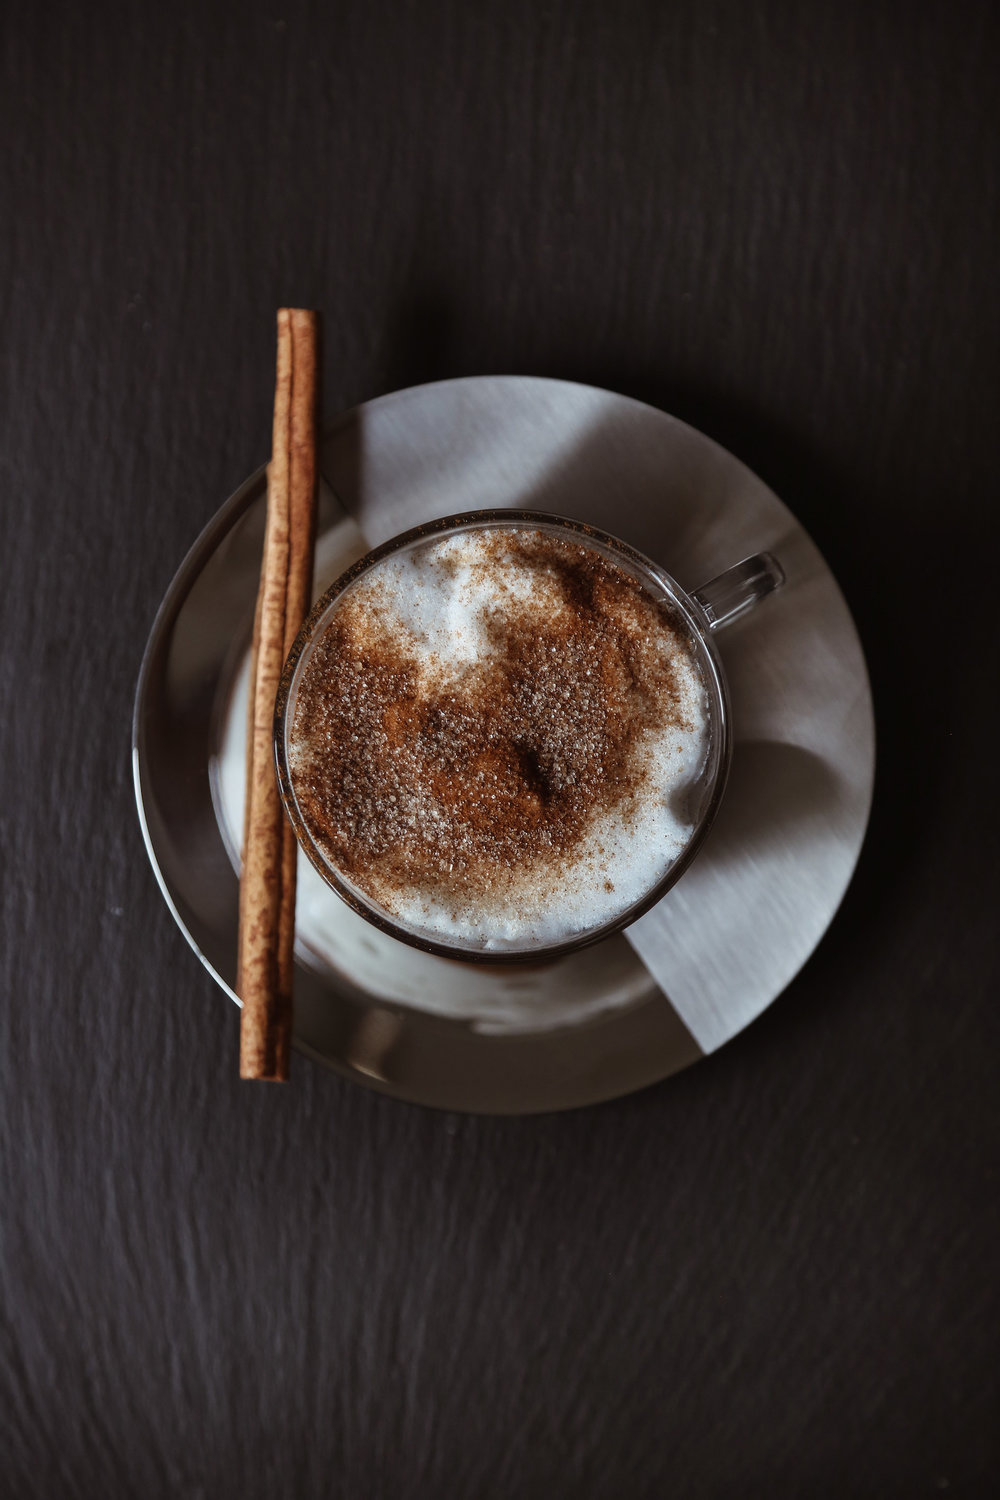 CINNAMON SUGAR LATTE - serves 1